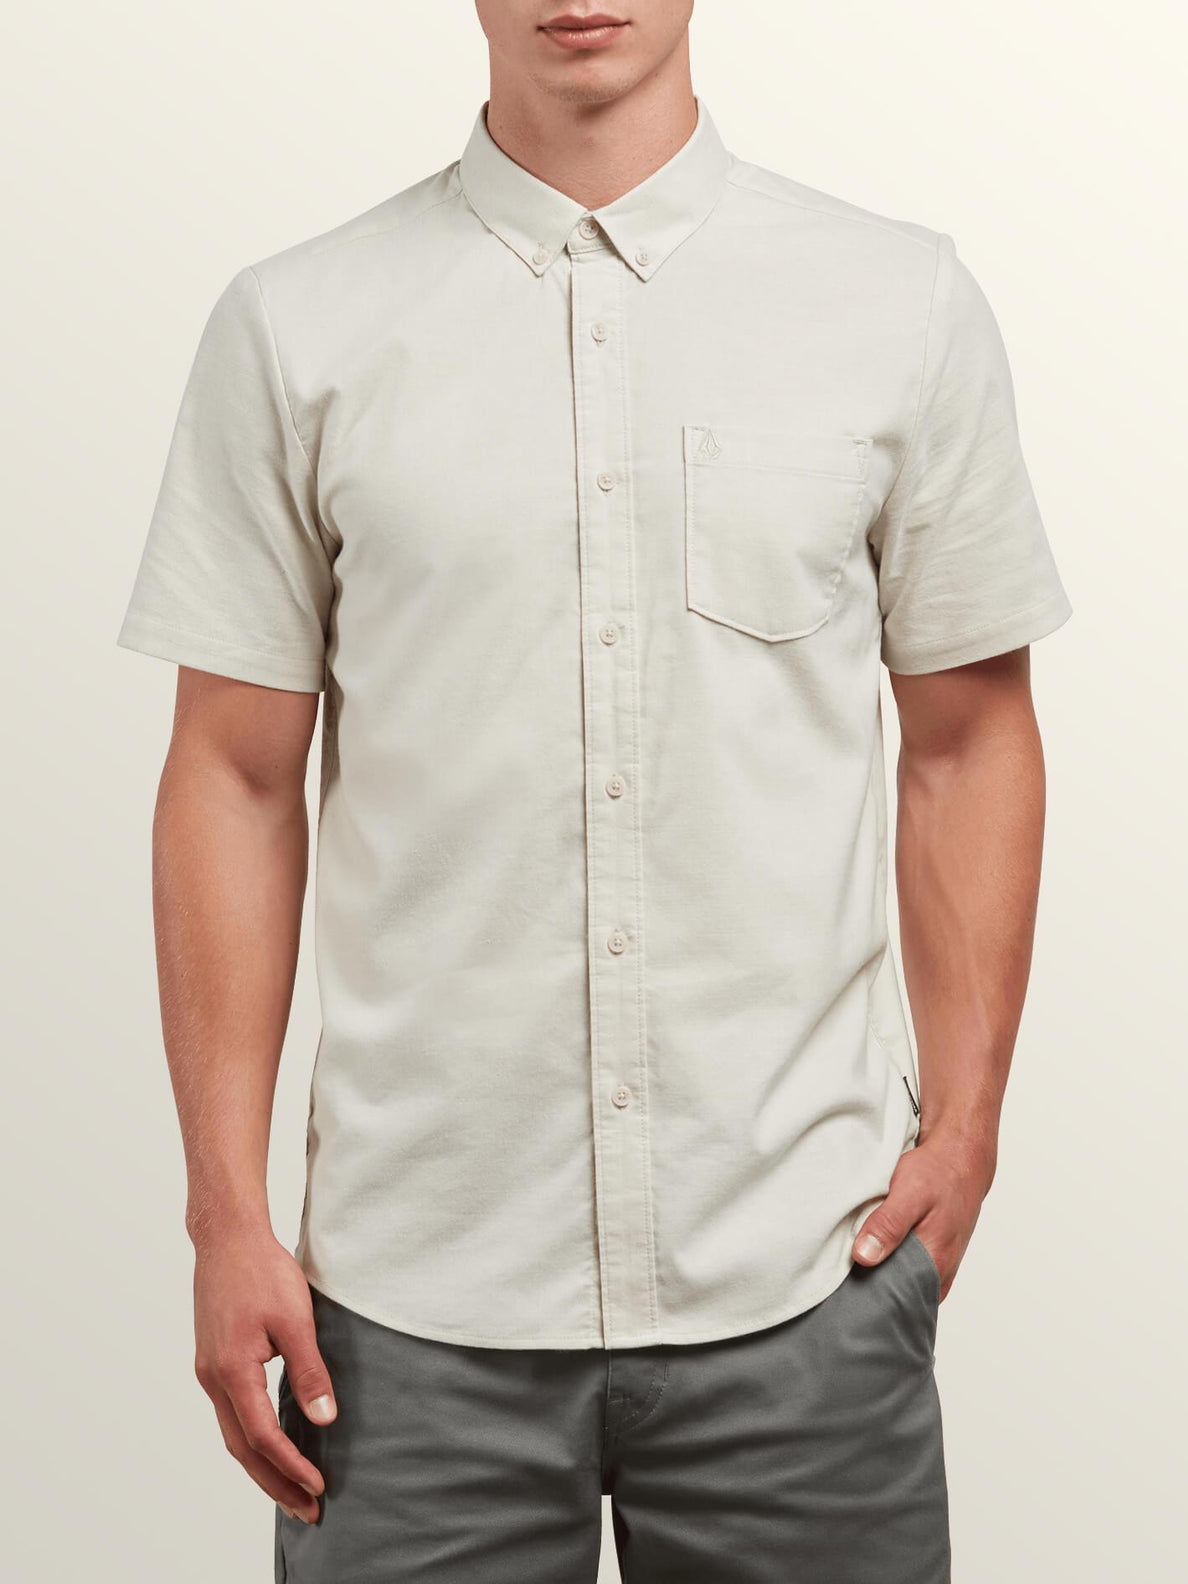 Everett Oxford Short Sleeve Shirt In Lint, Front View